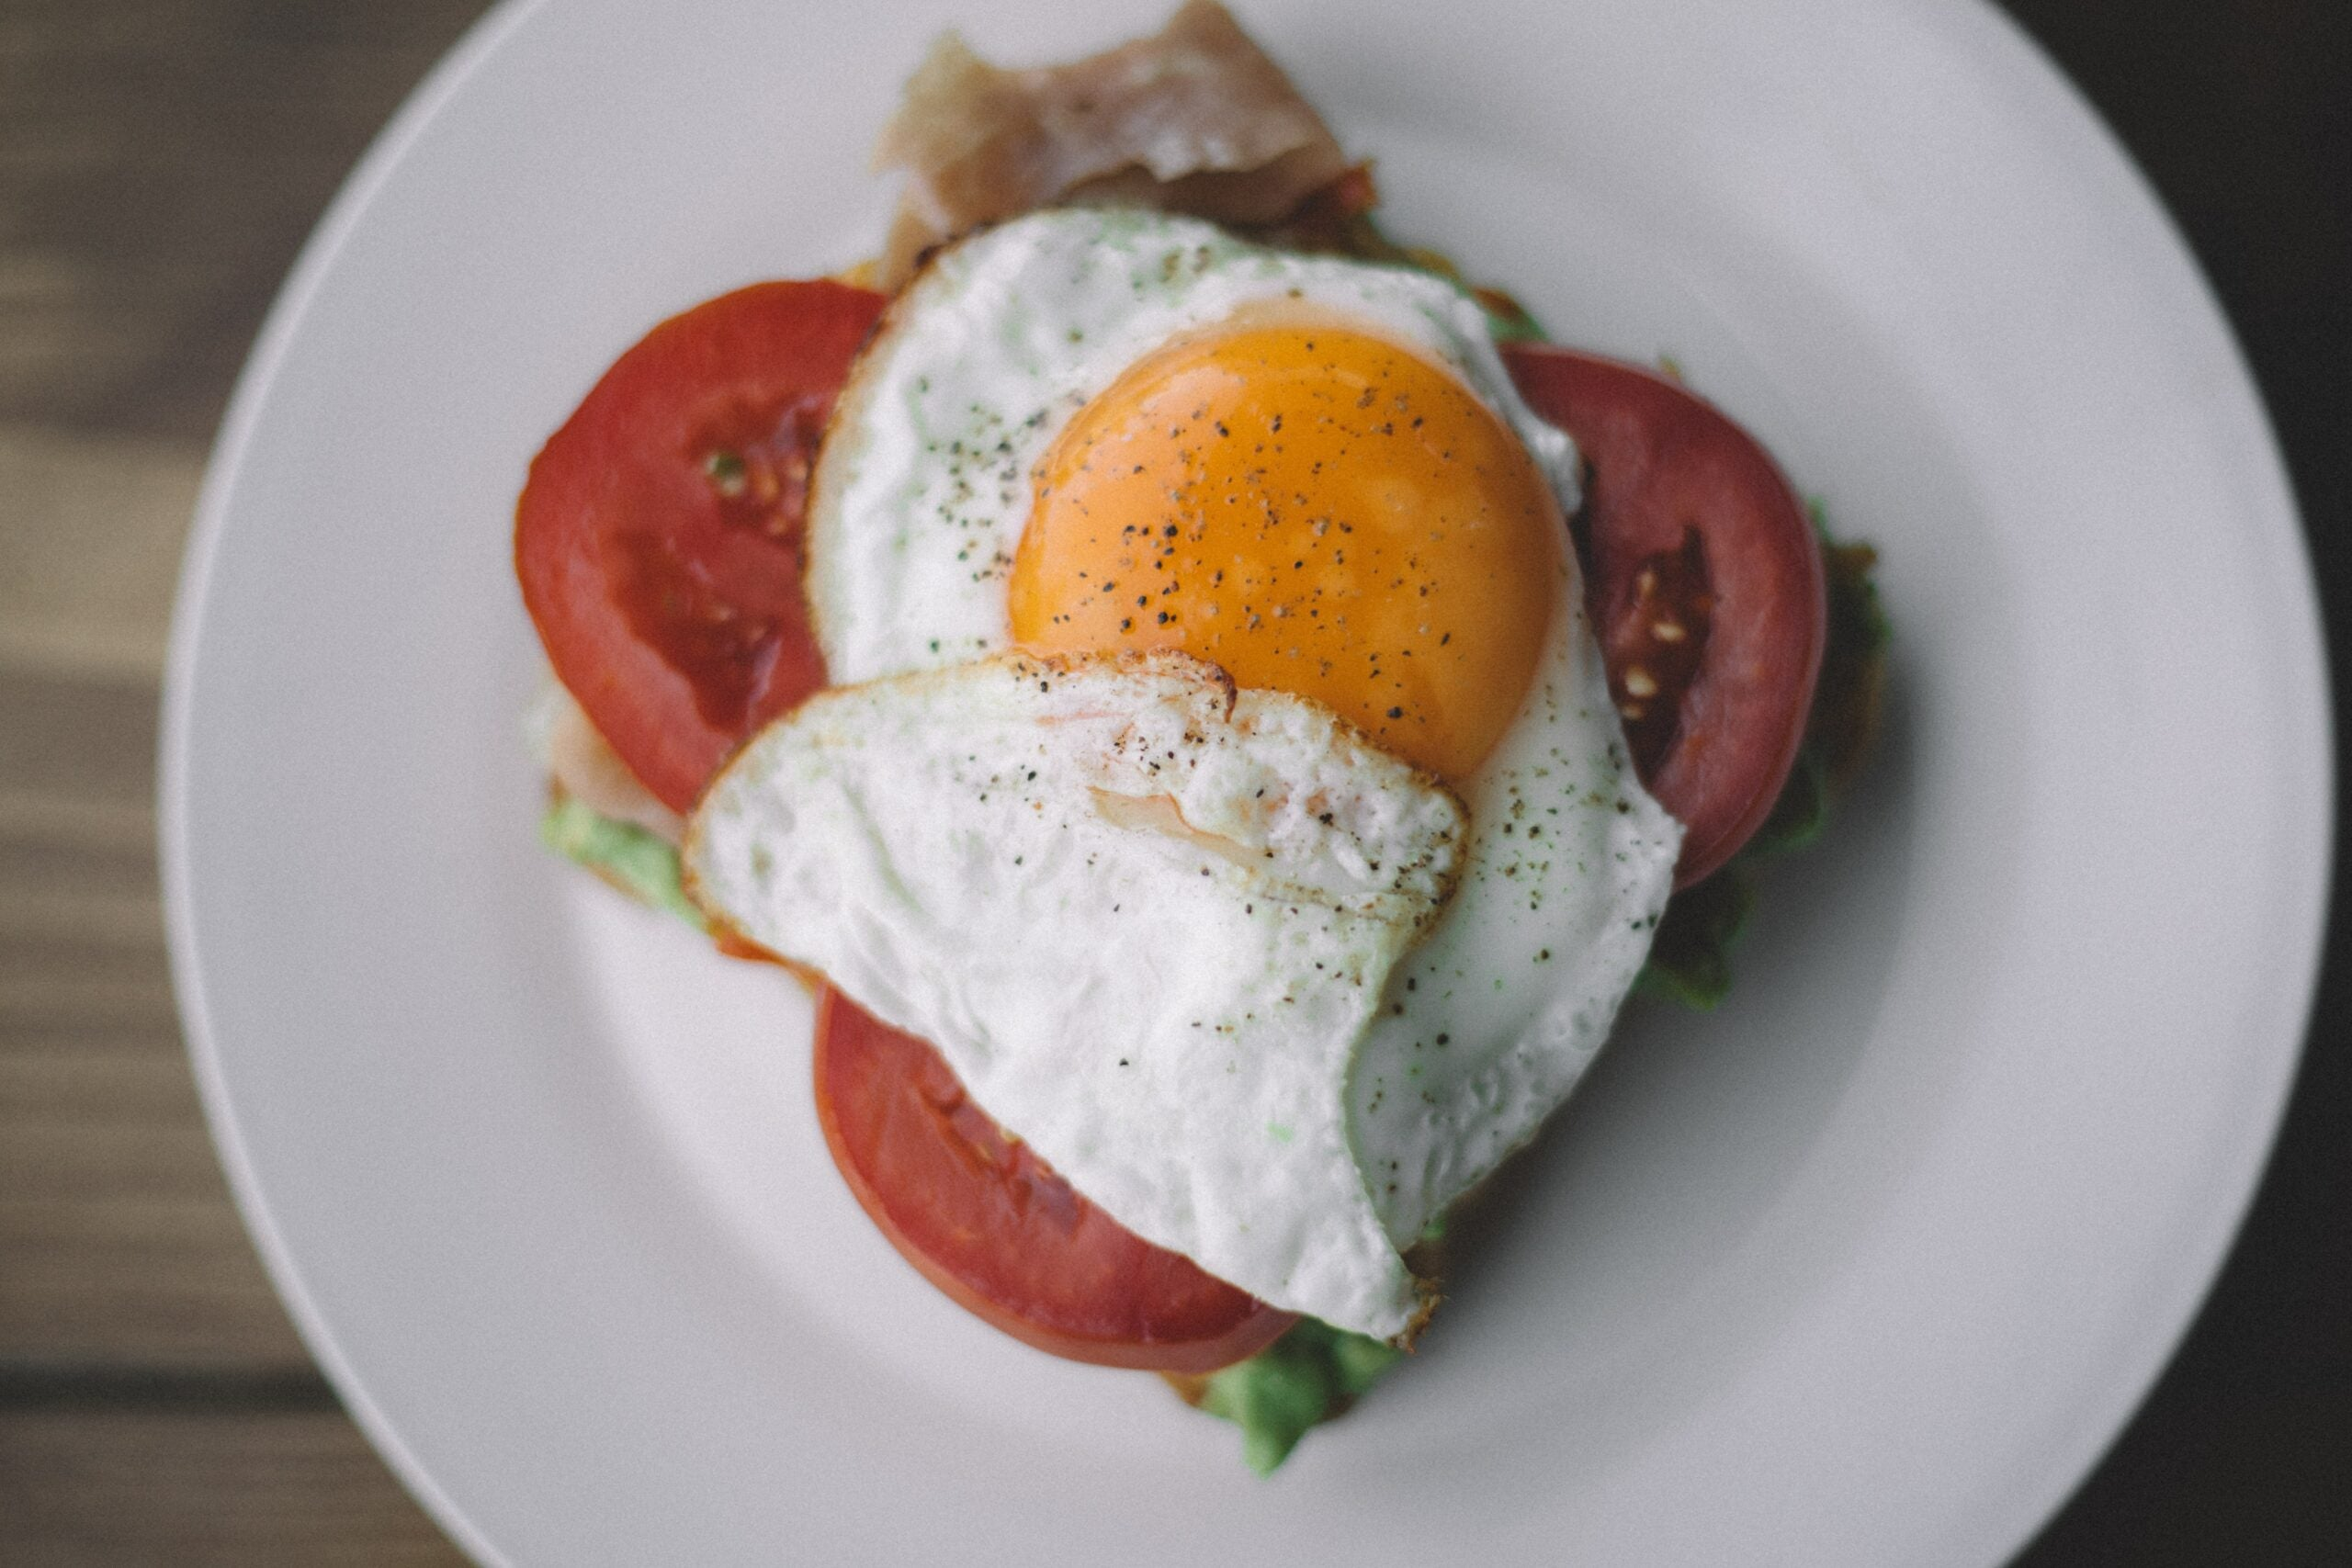 a fried egg on top of tomatoes on a white plate